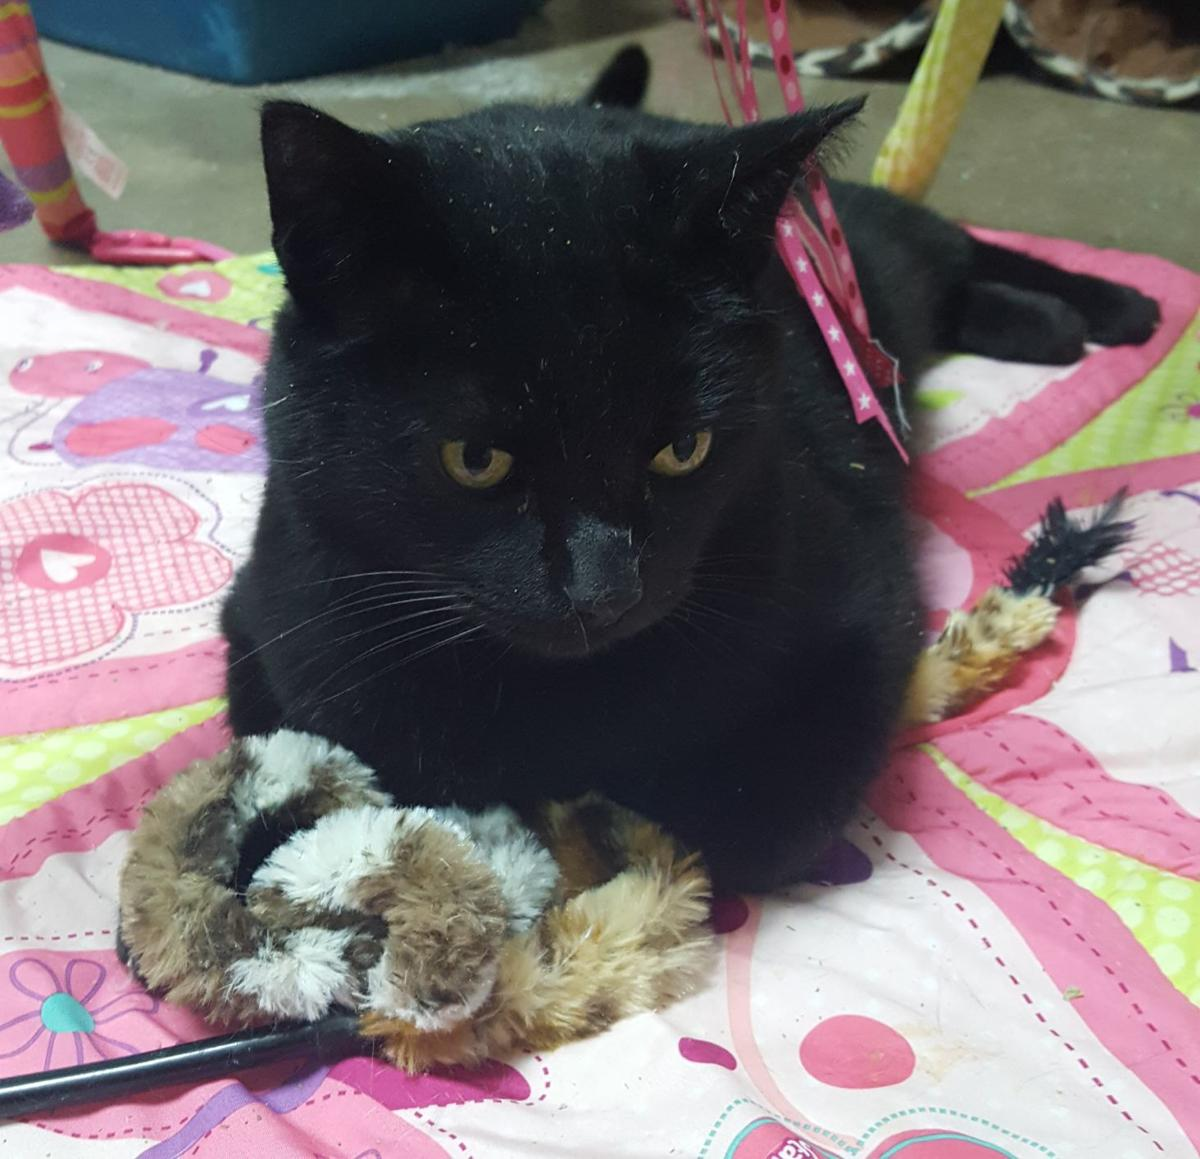 happy tails protects cats during halloween | monticello herald